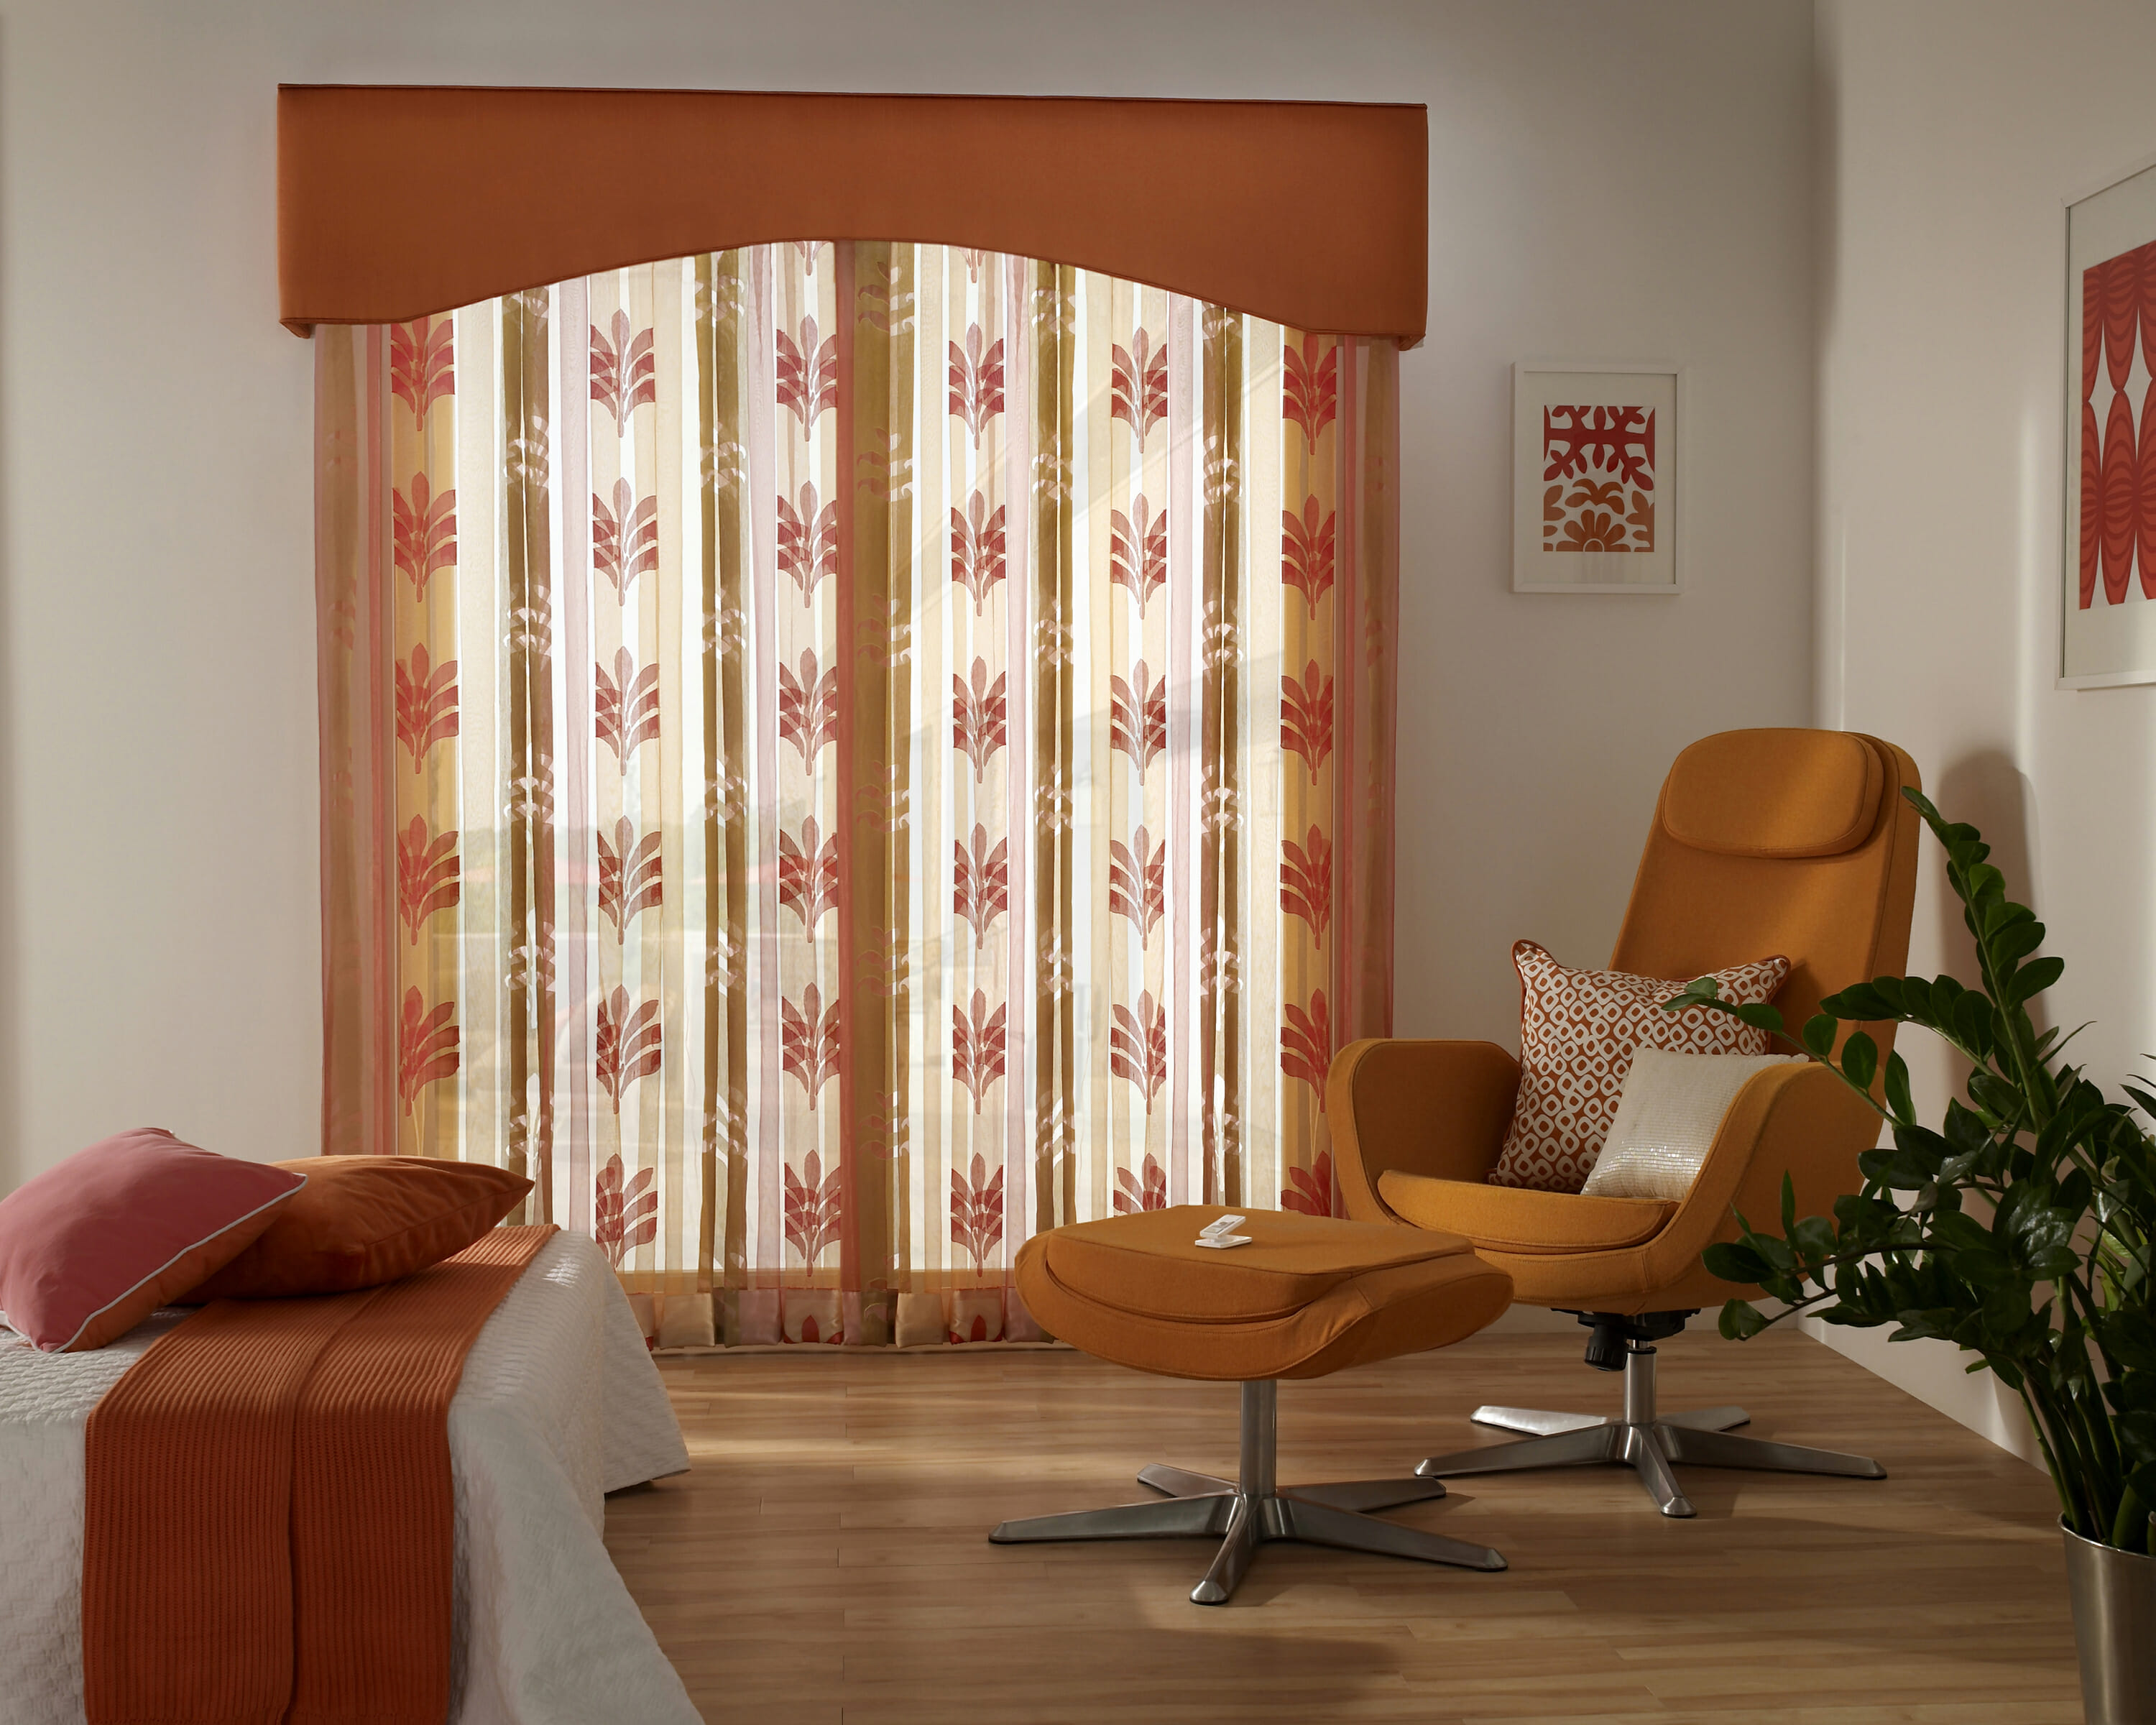 Door Privacy Curtain French Door Blinds Shades Patio Sliding Glass Window Treatments